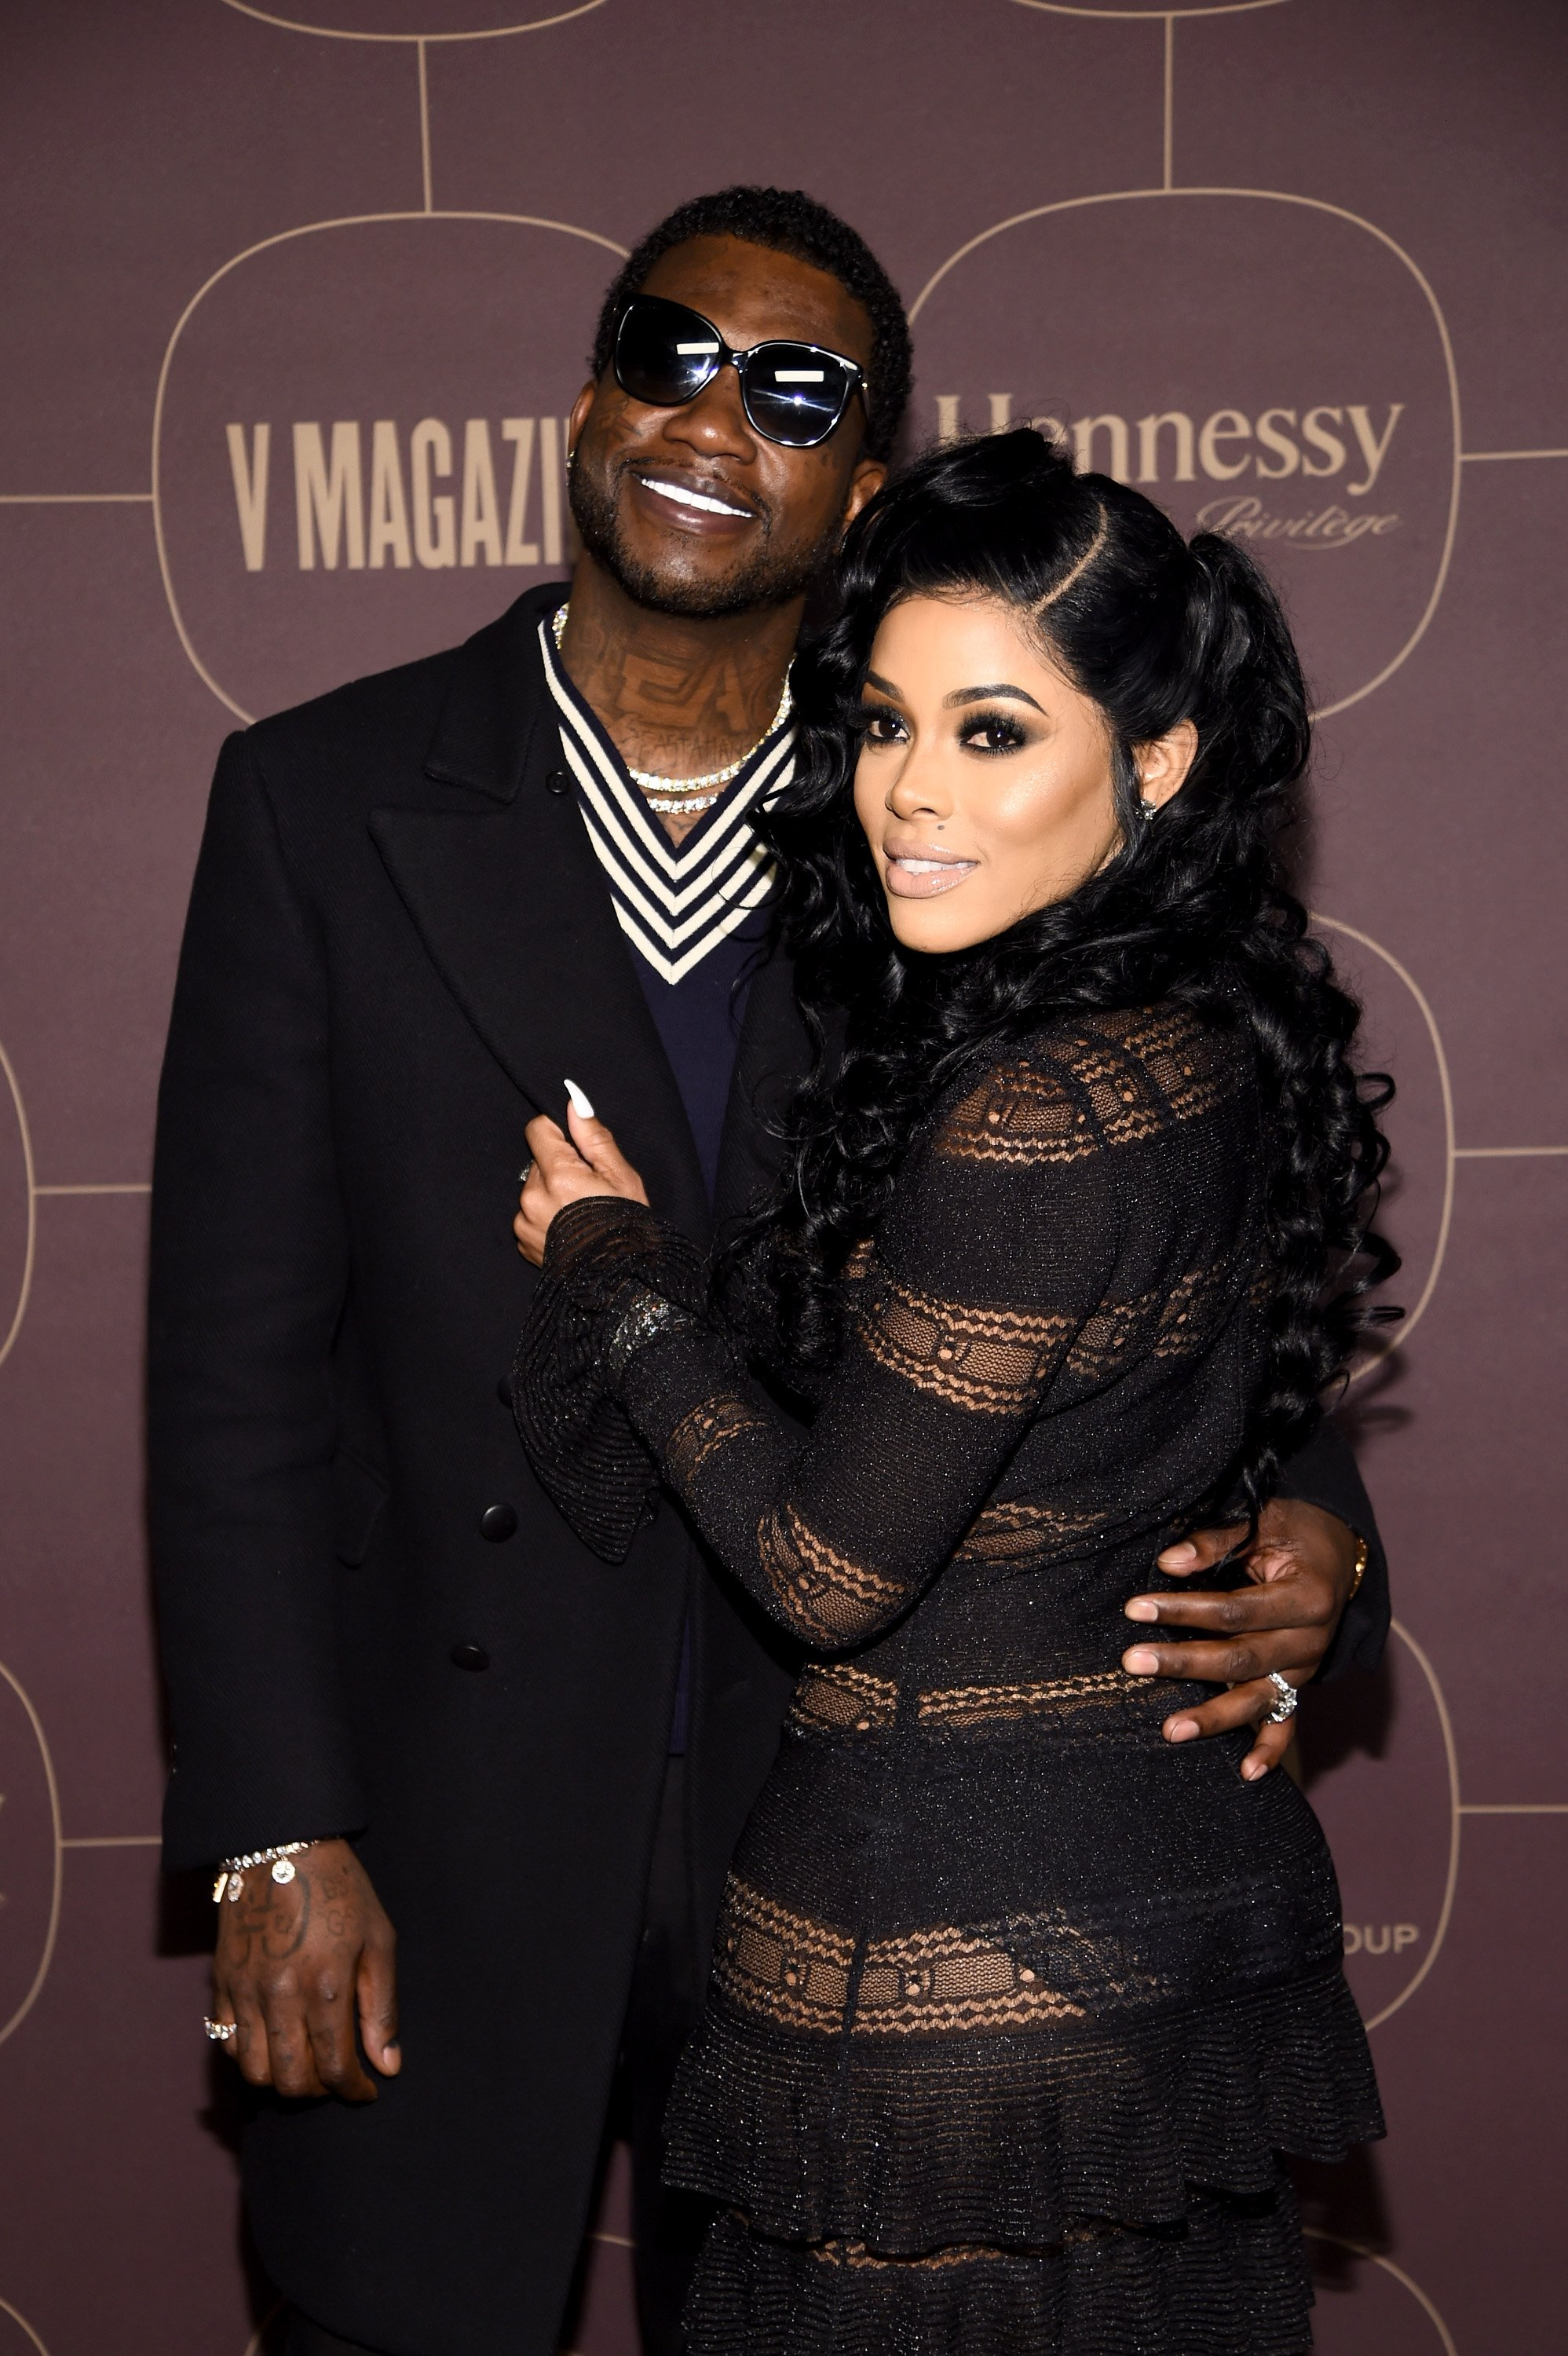 Gucci Mane and Keyshia Ka'Oir attend the Warner Music Group Pre-Grammy Party  on January 25, 2018 in New York City. | Source: Getty Images